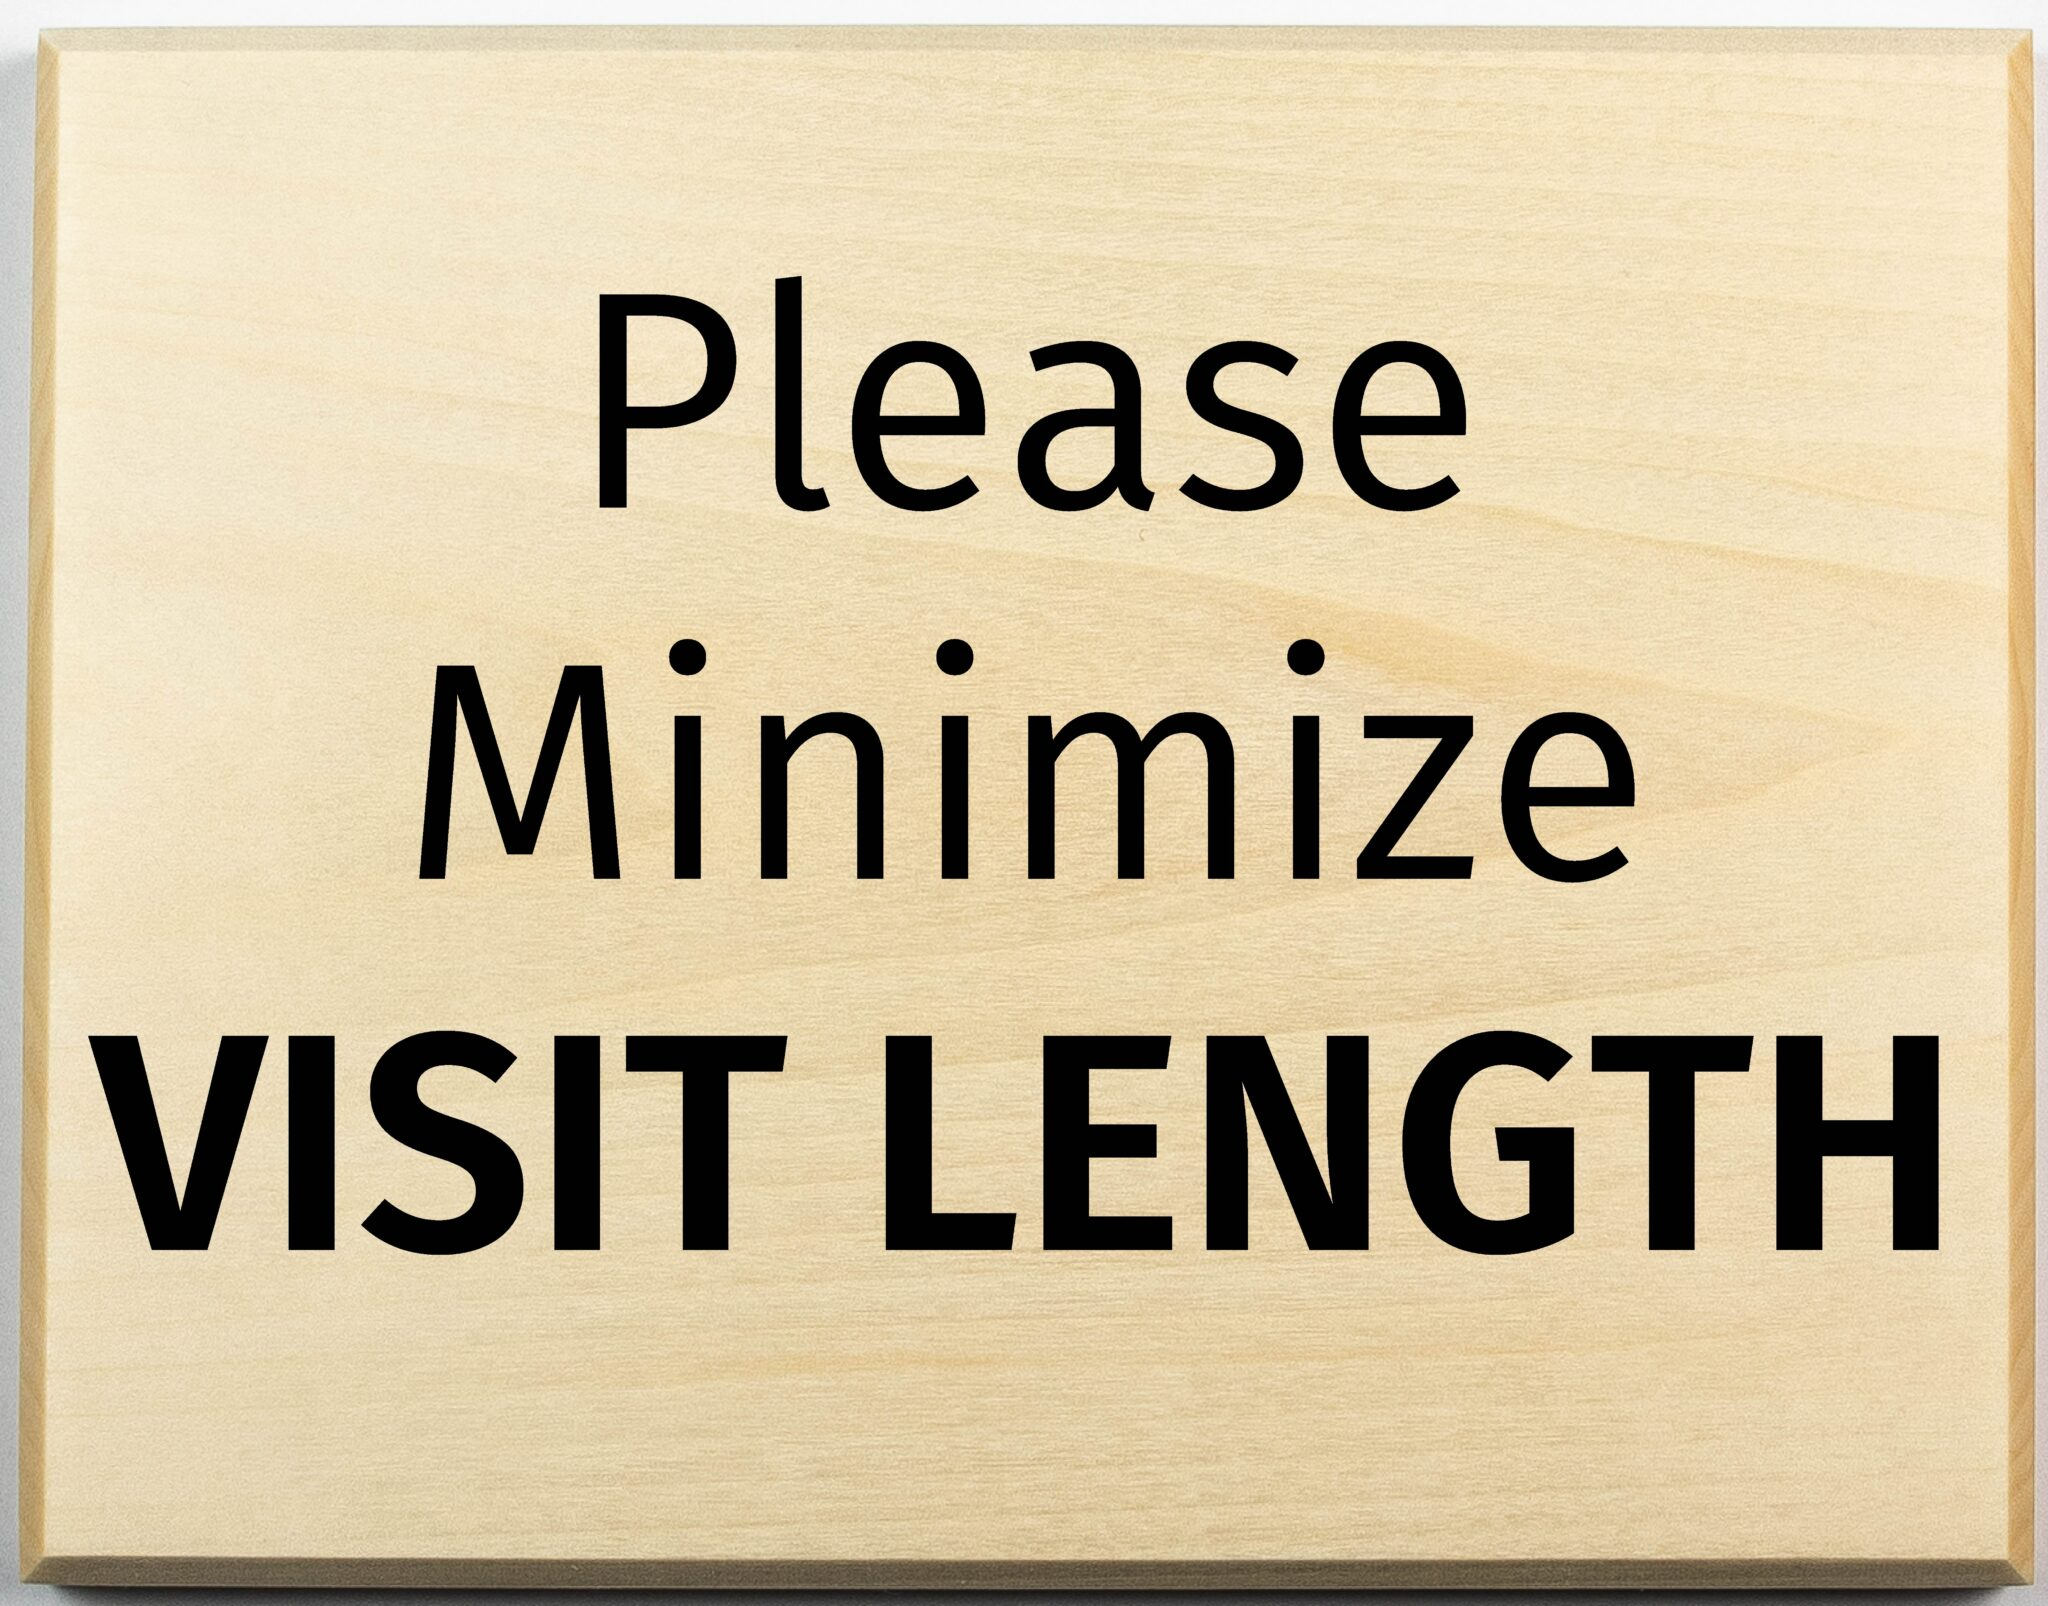 Please minimize visit length sign